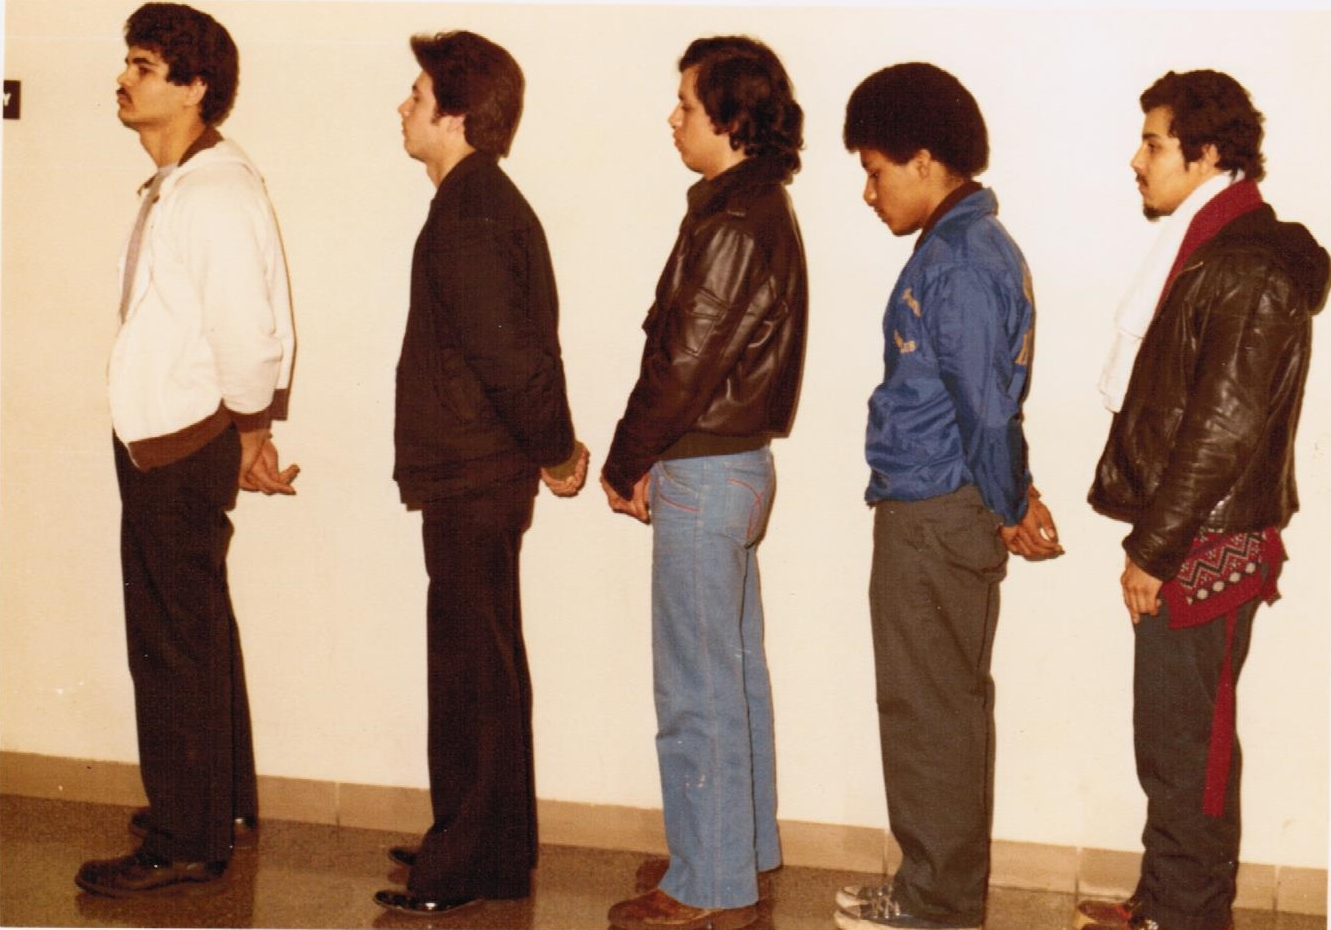 Fernie Zayas (second from right) in a line-up for the triple murder on Catalpa Street in Chicago. (See Excerpt 2) (Courtesy of Bill O'Brien)